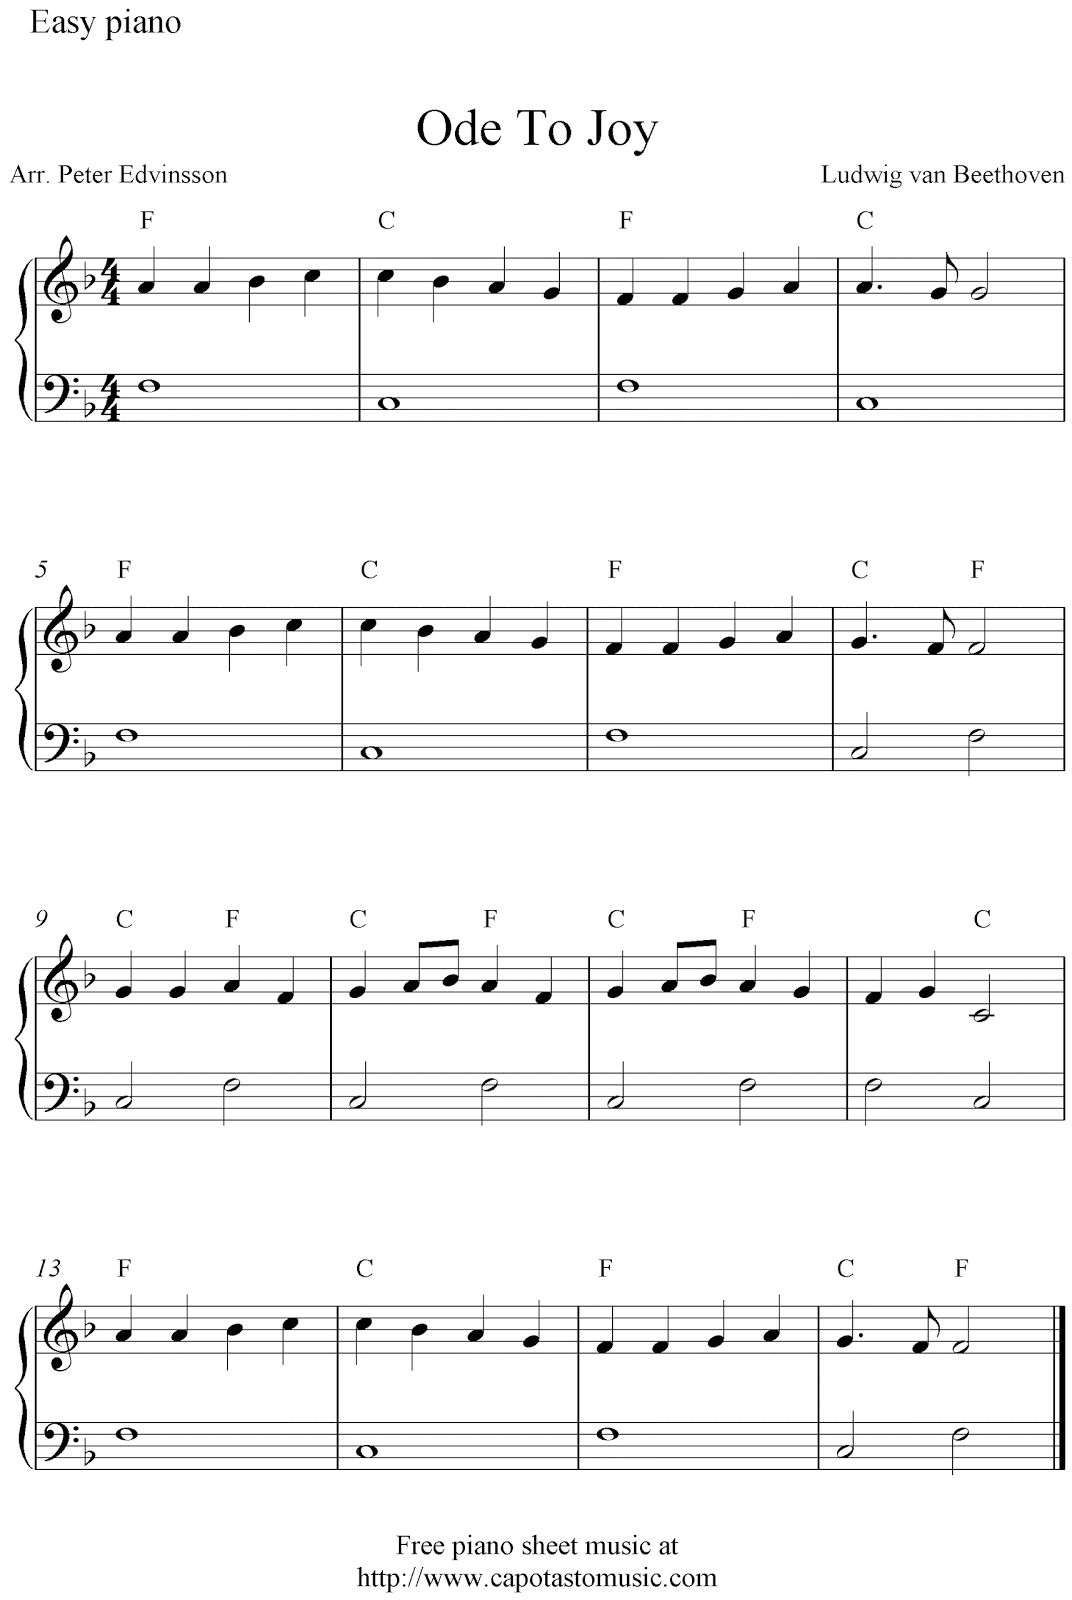 photo about Free Printable Piano Sheet Music for Beginners With Letters referred to as Printable Piano Sheet Tunes For Inexperienced persons With Letters